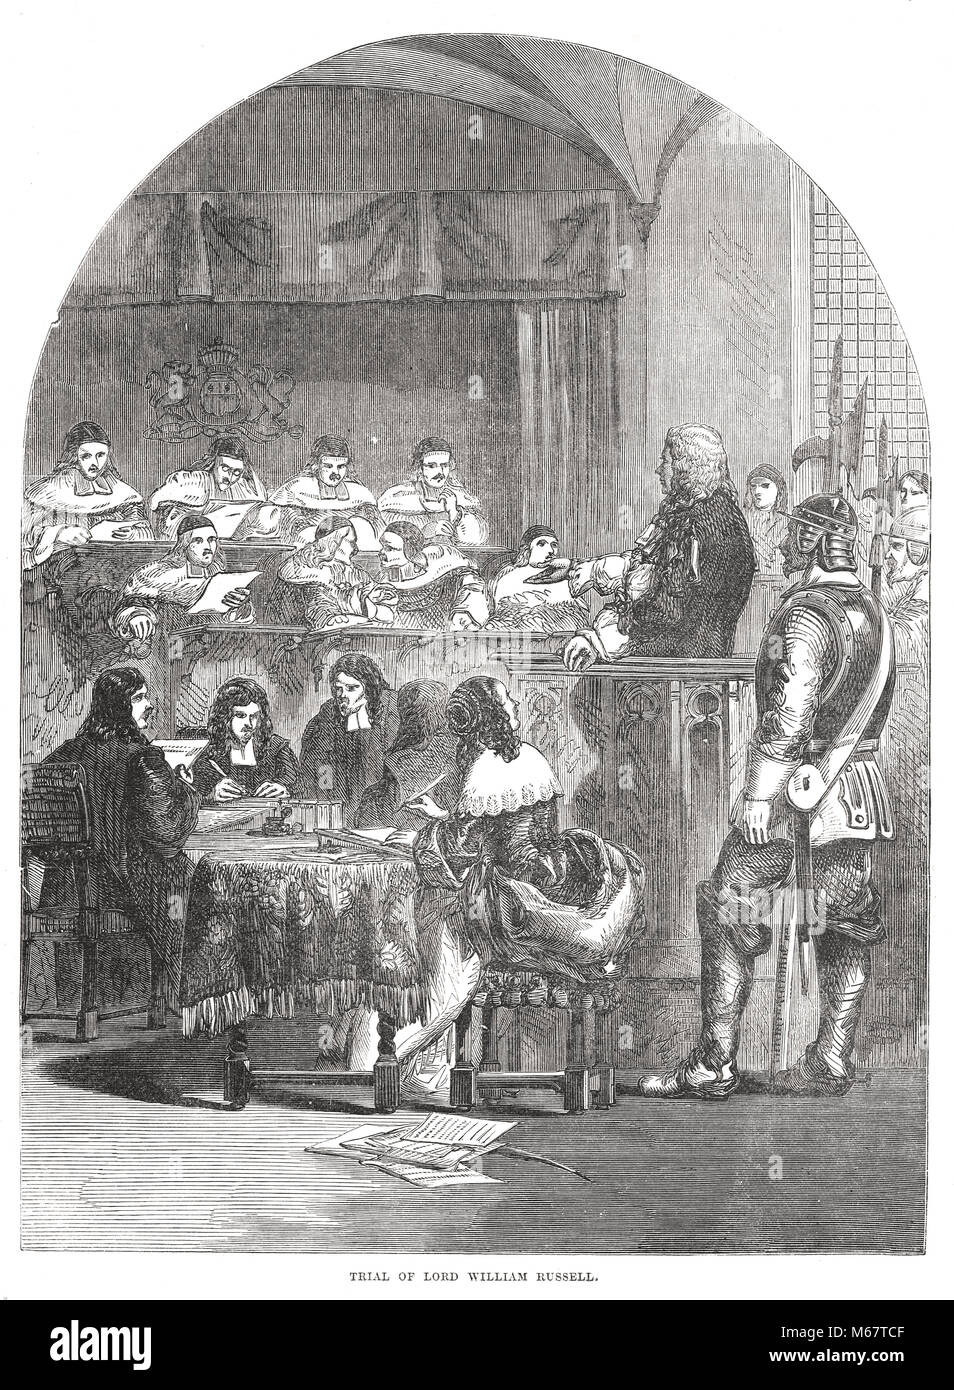 Trial of Lord William Russell, 1683 - Stock Image